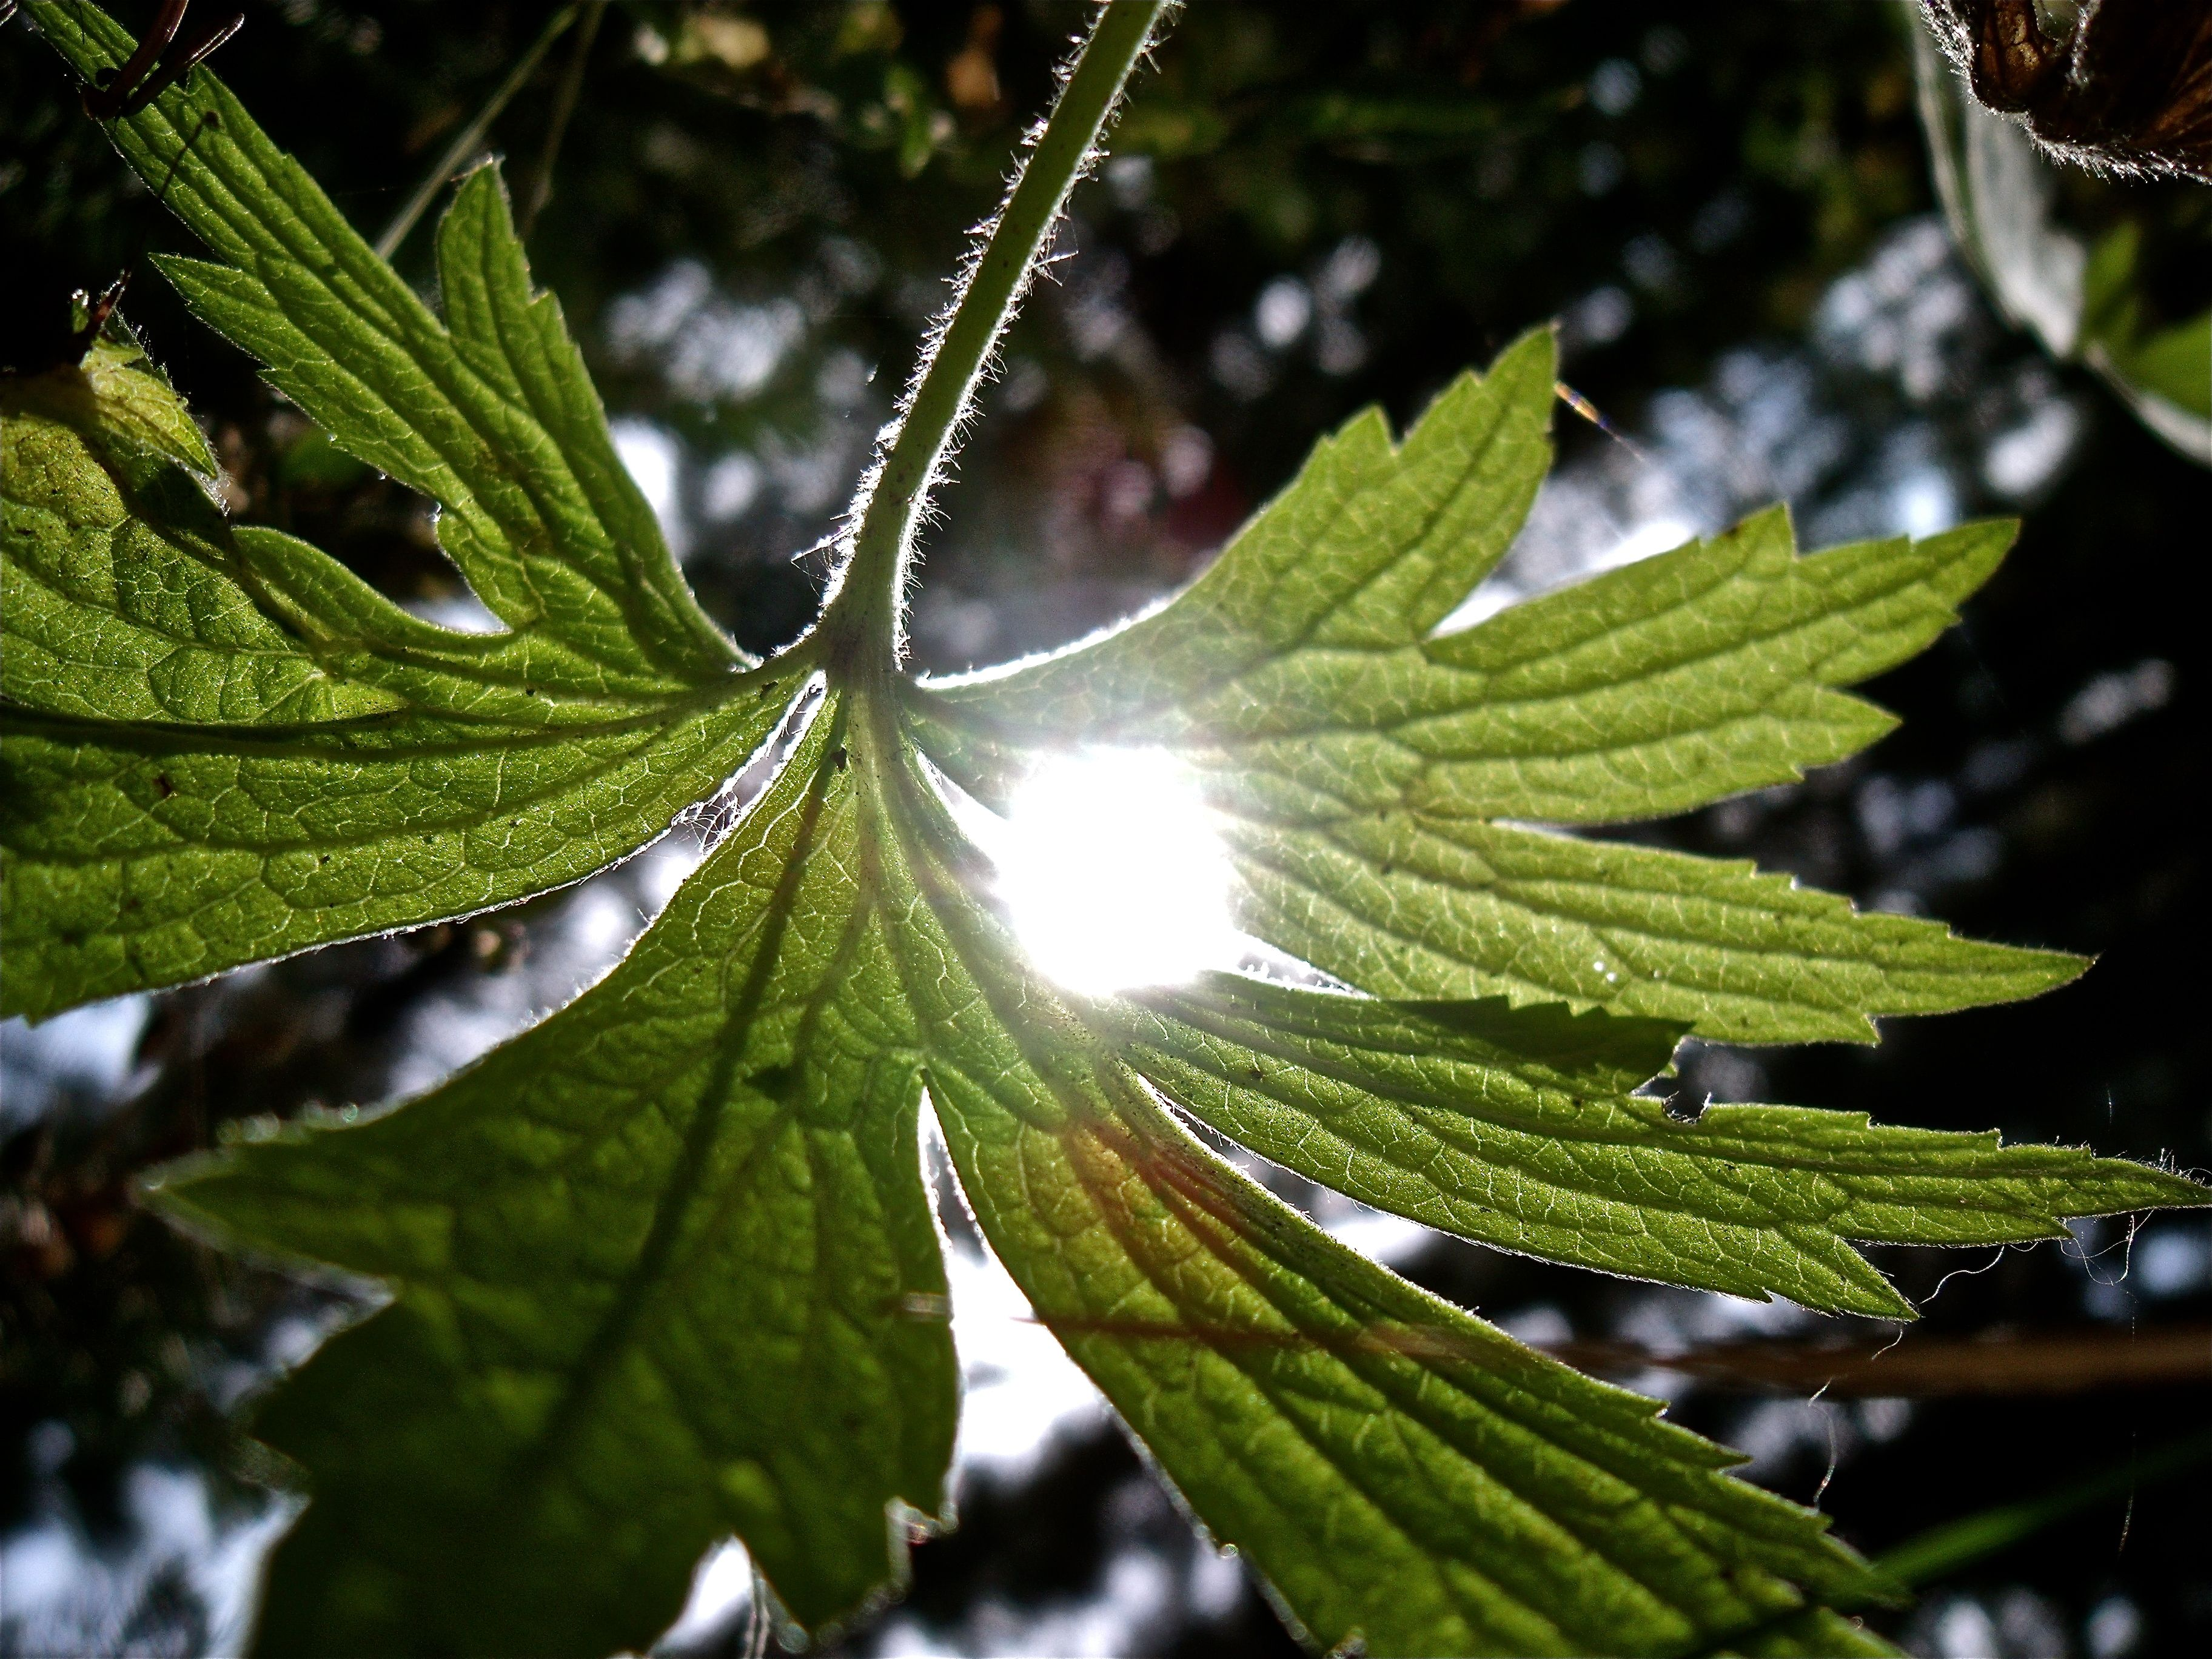 probably one of my favorite photos I've ever taken, from the underside of a leaf